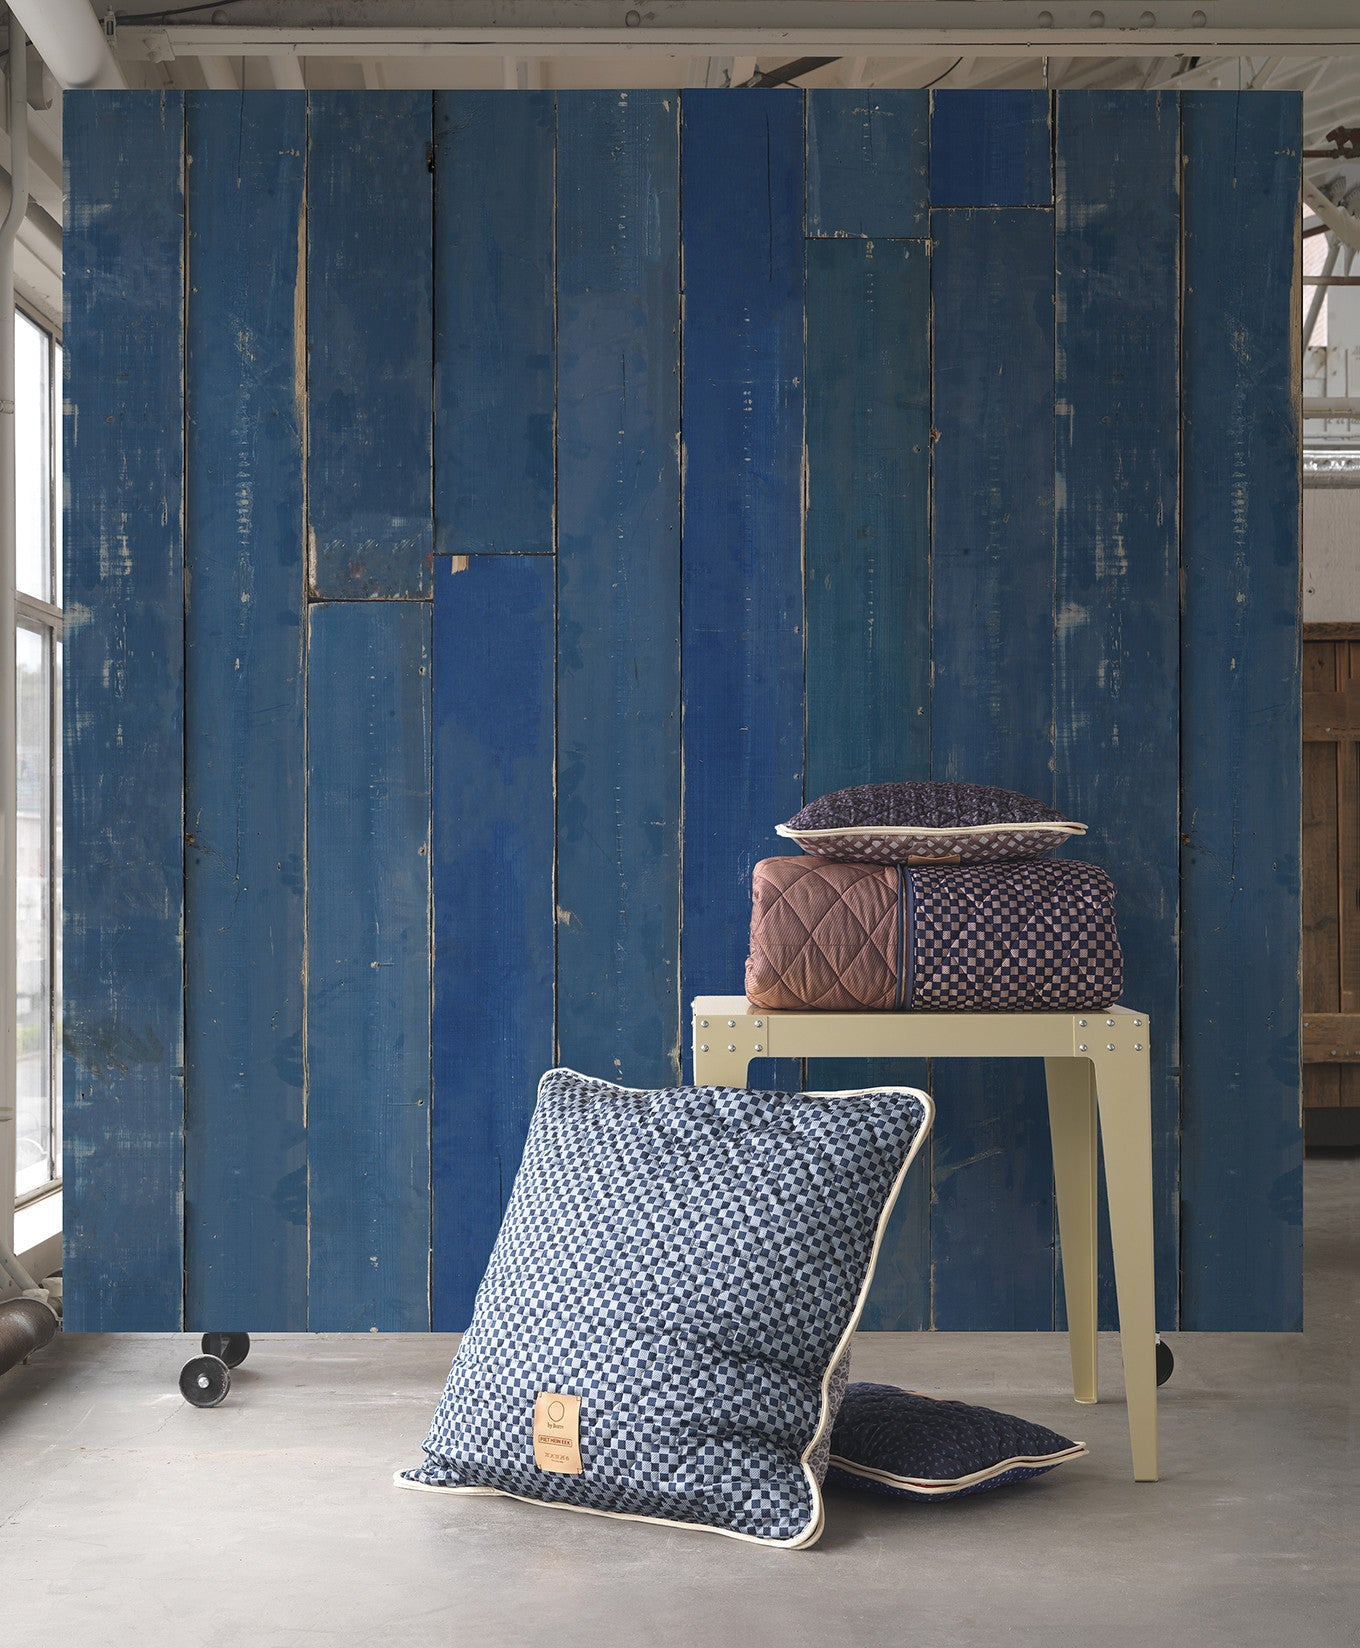 blue scrapwood wallpaper design by piet hein eek for nlxl wallpaper burke decor. Black Bedroom Furniture Sets. Home Design Ideas